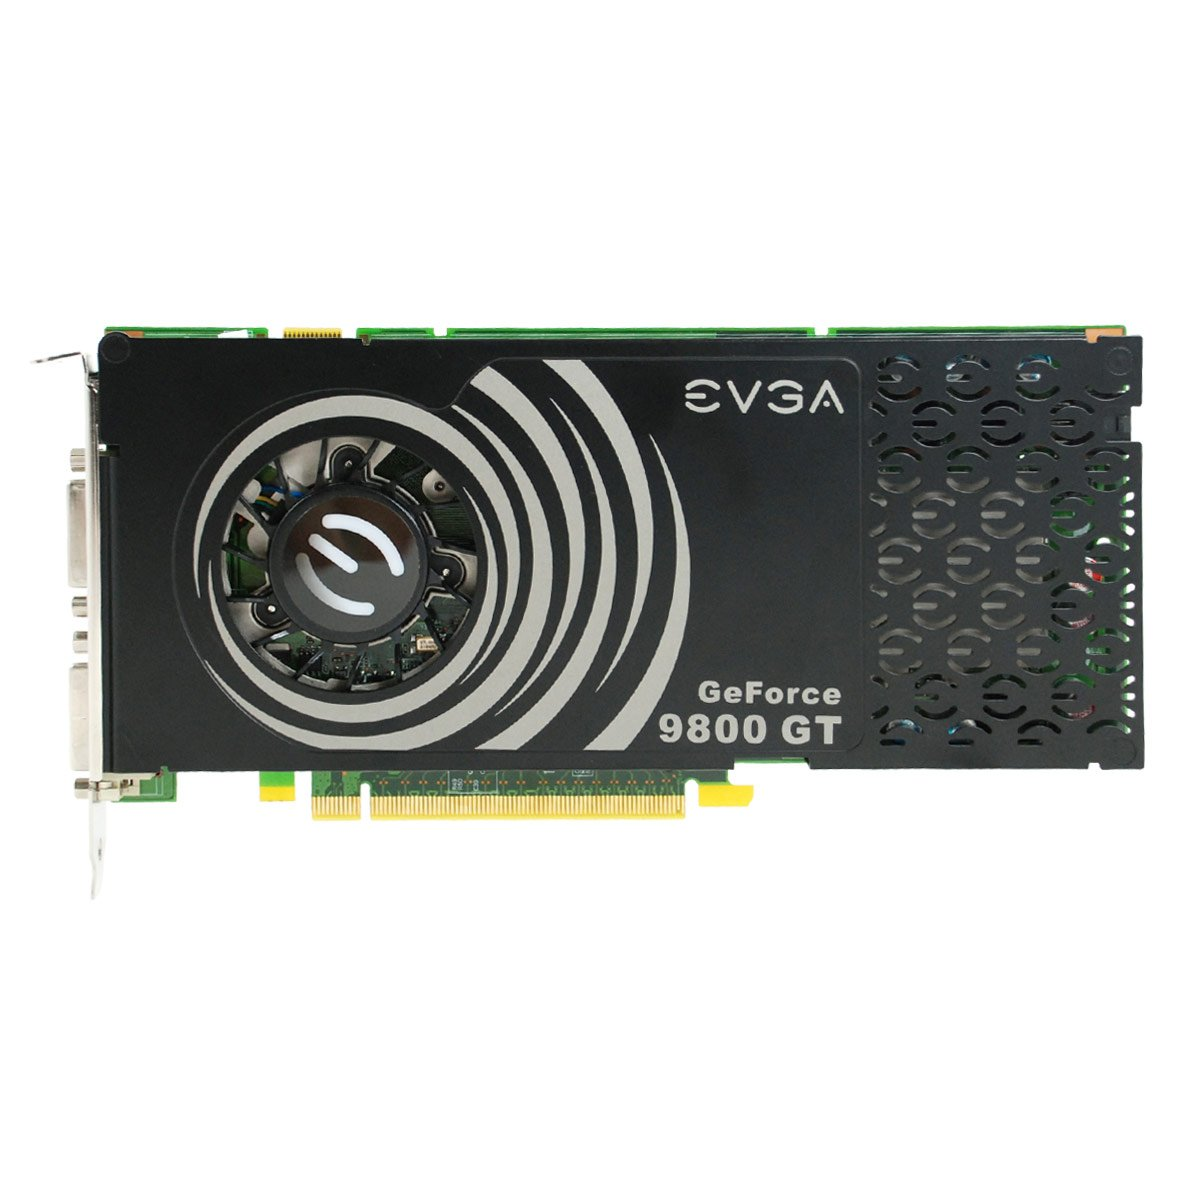 Amazon EVGA GeForce 9800 GT 512 MB DDR3 PCI Express 20 Graphics Card P3 N973 TR Electronics